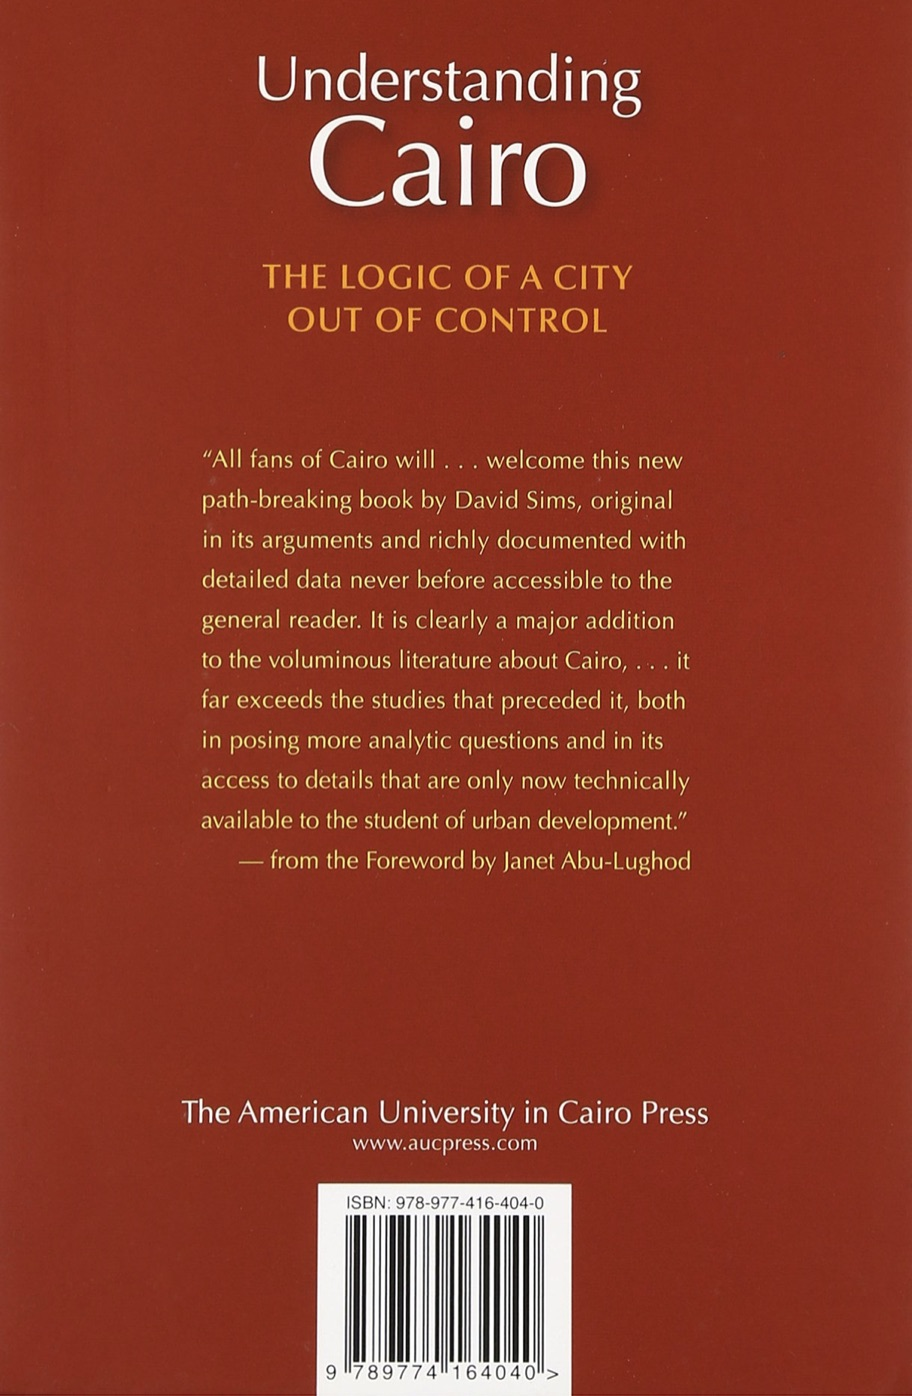 Understanding Cairo: The Logic of a City out of Control - Book Review